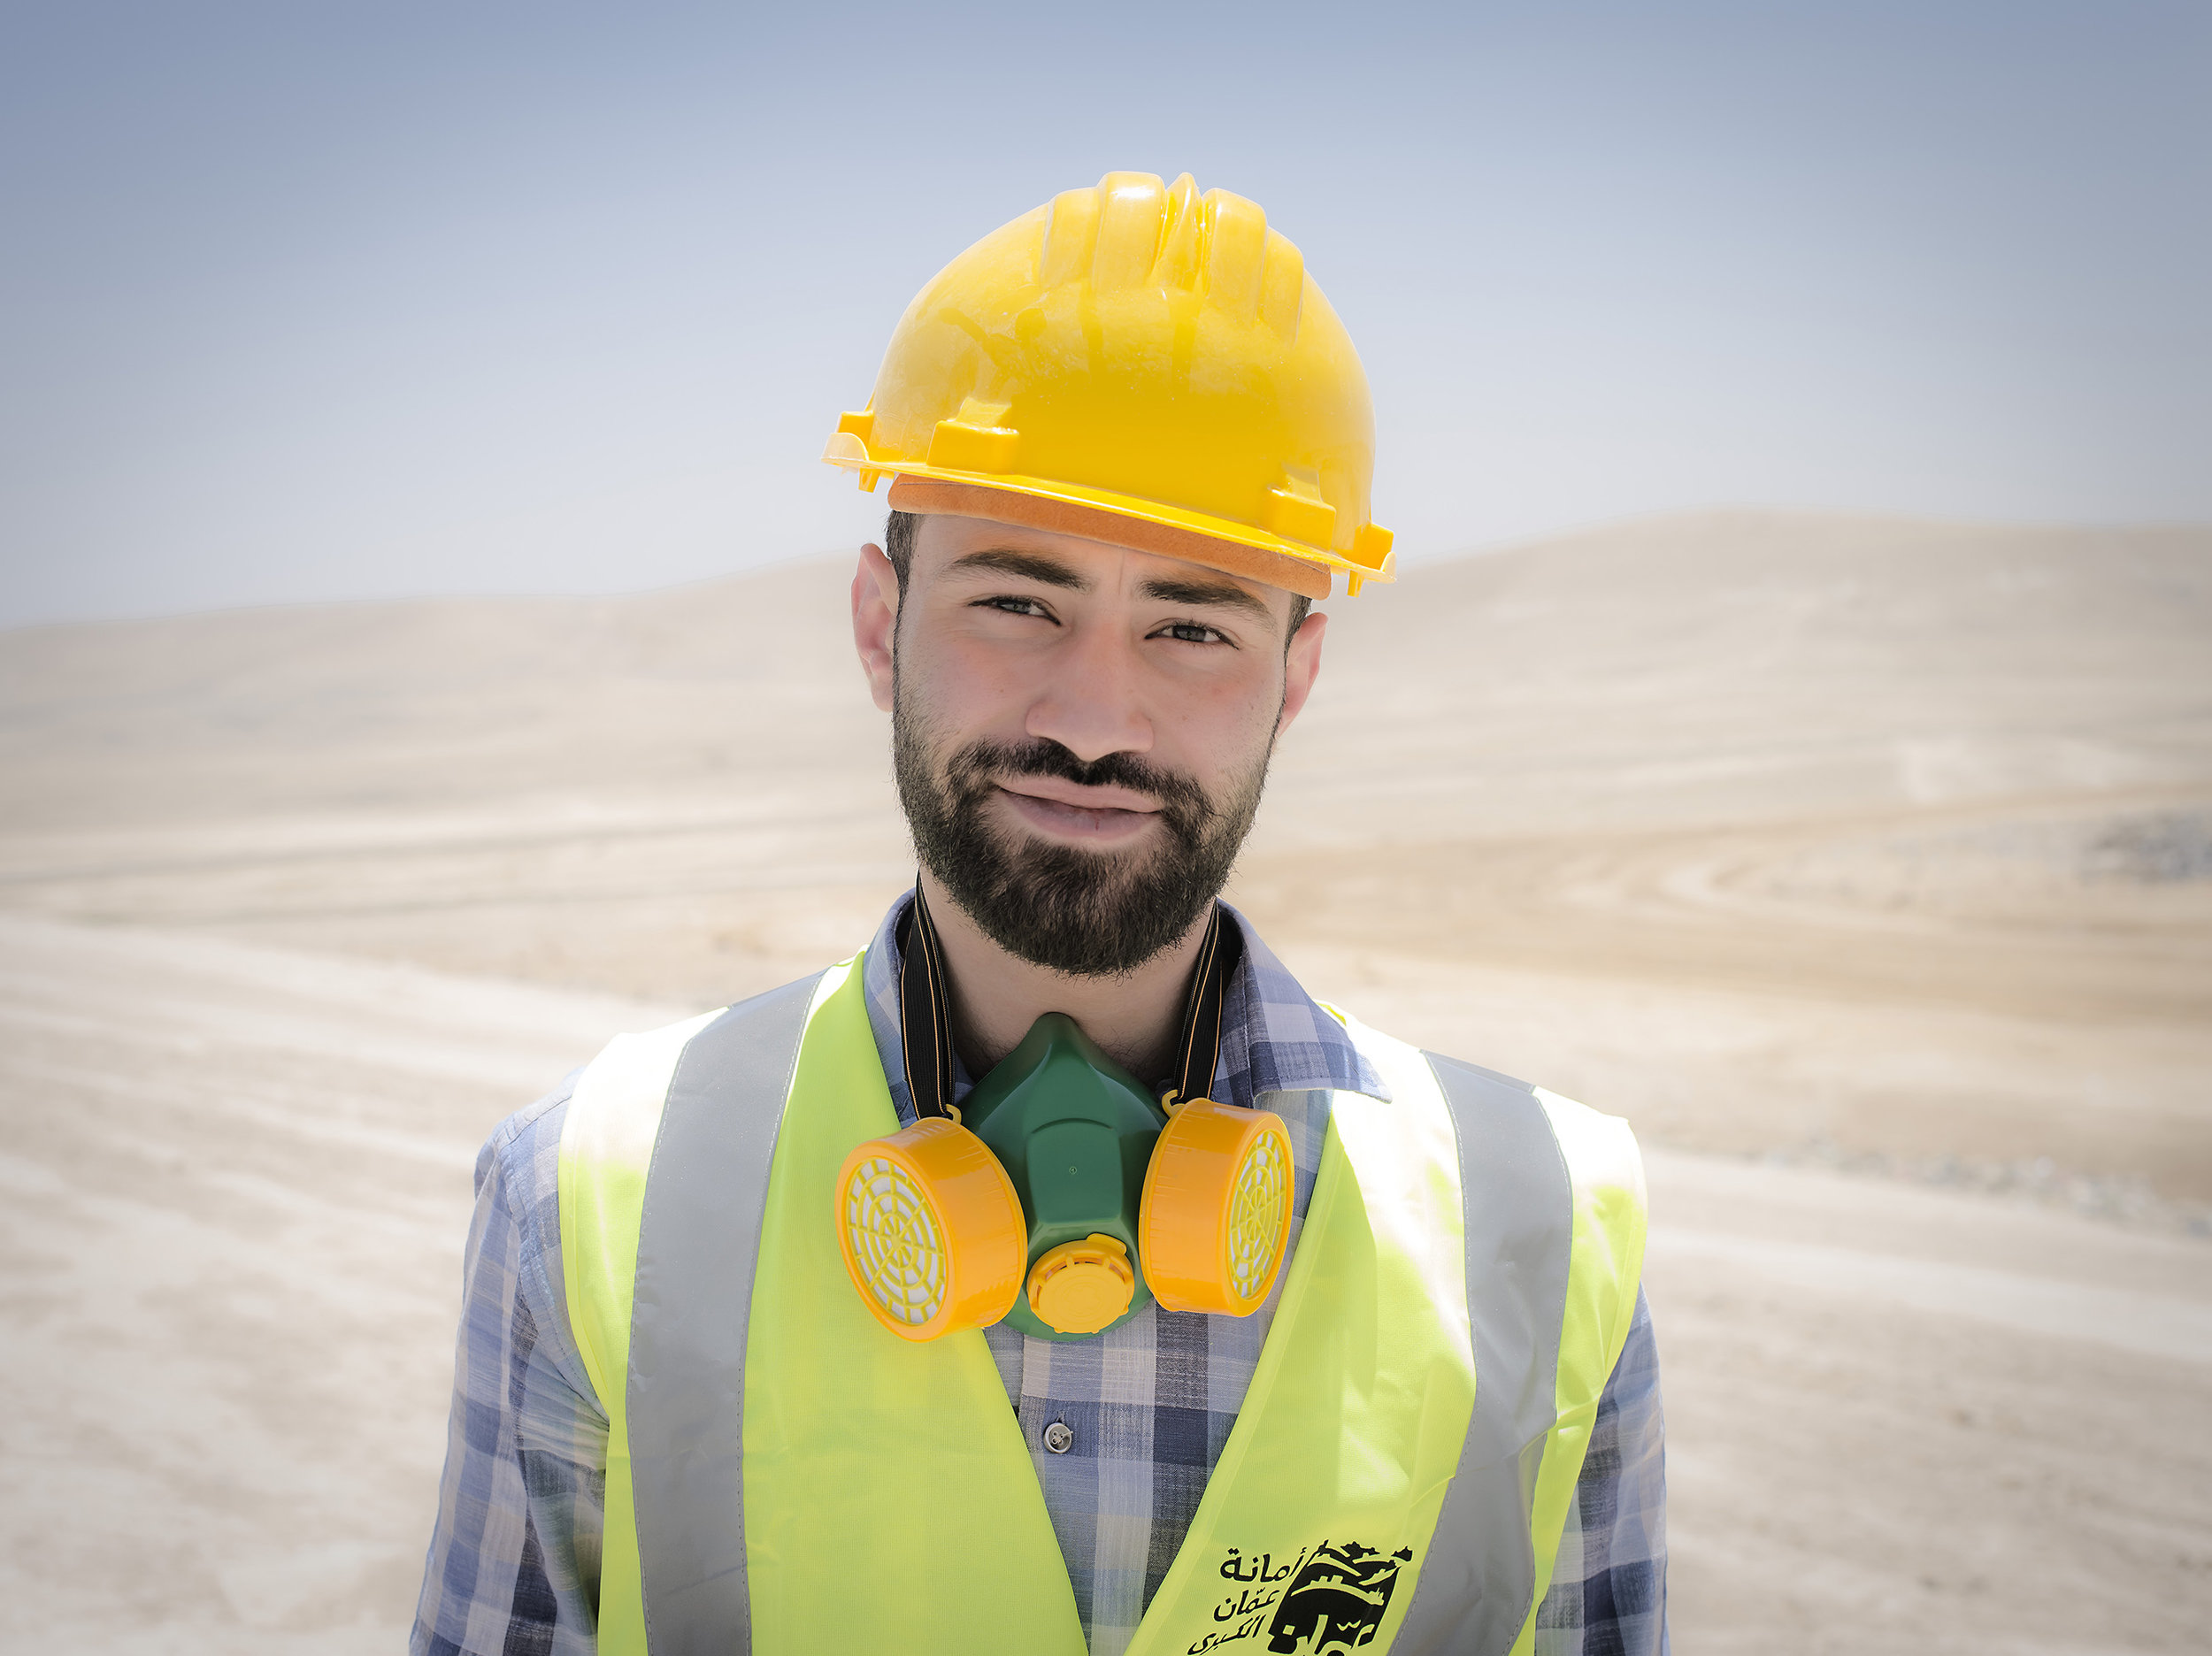 Osama works with sanitation for the country Jordan.